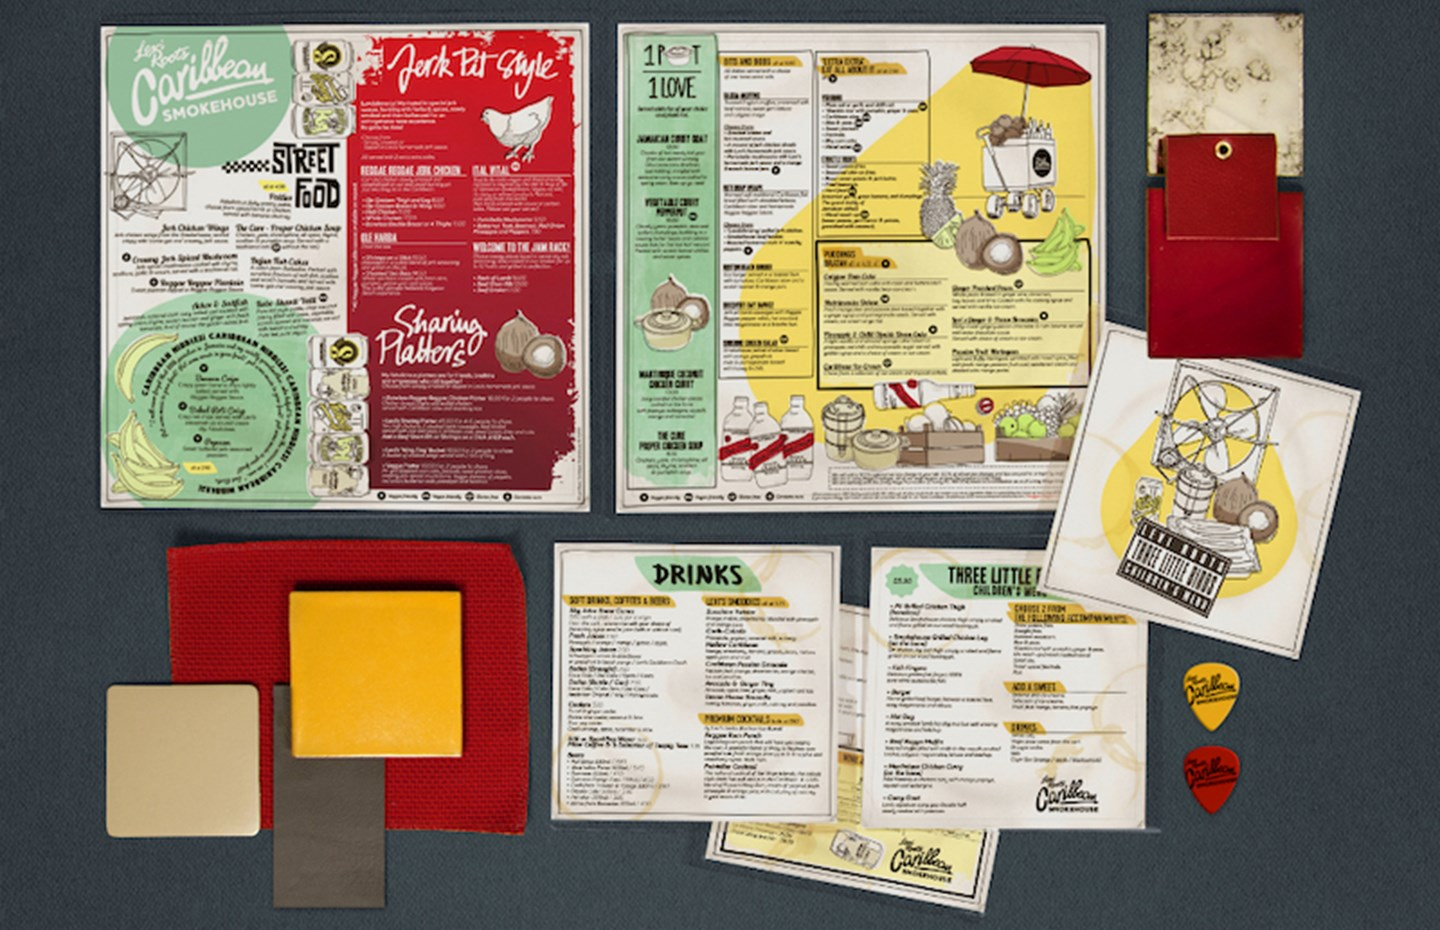 Levi Roots Caribbean Smokehouse menu design - B3 Designers